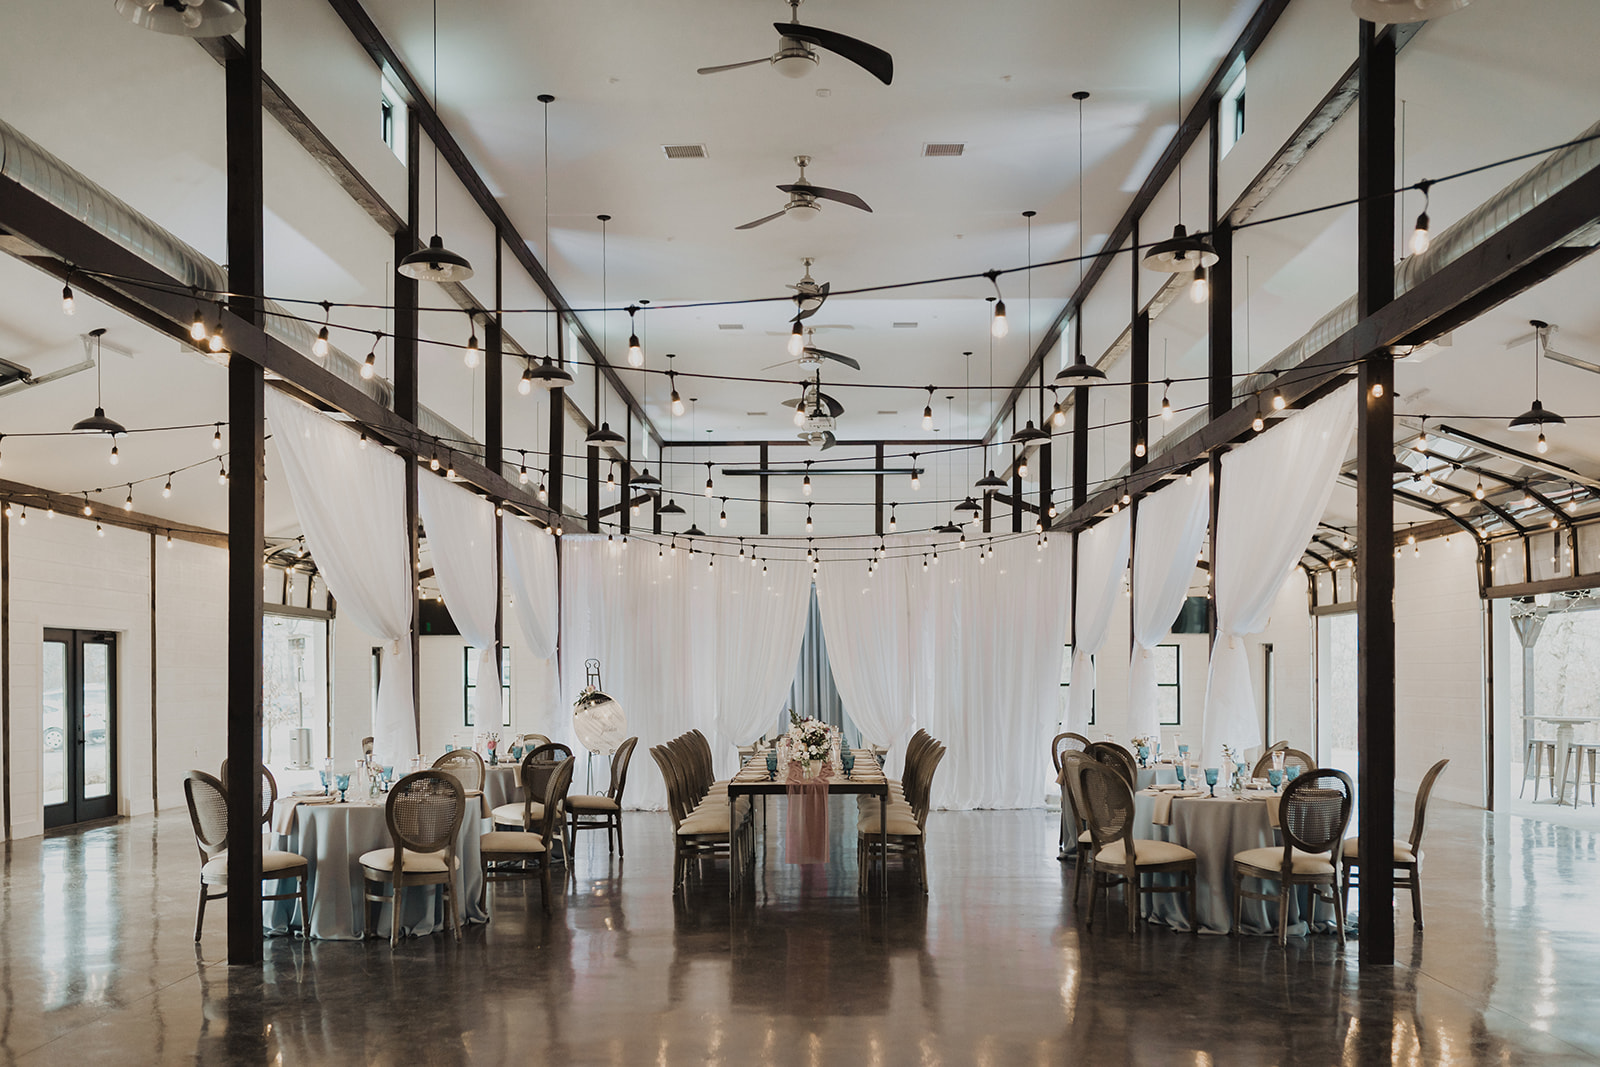 Indoor Ceremony Tulsa Wedding Venue Dream Point Ranch 43.jpg